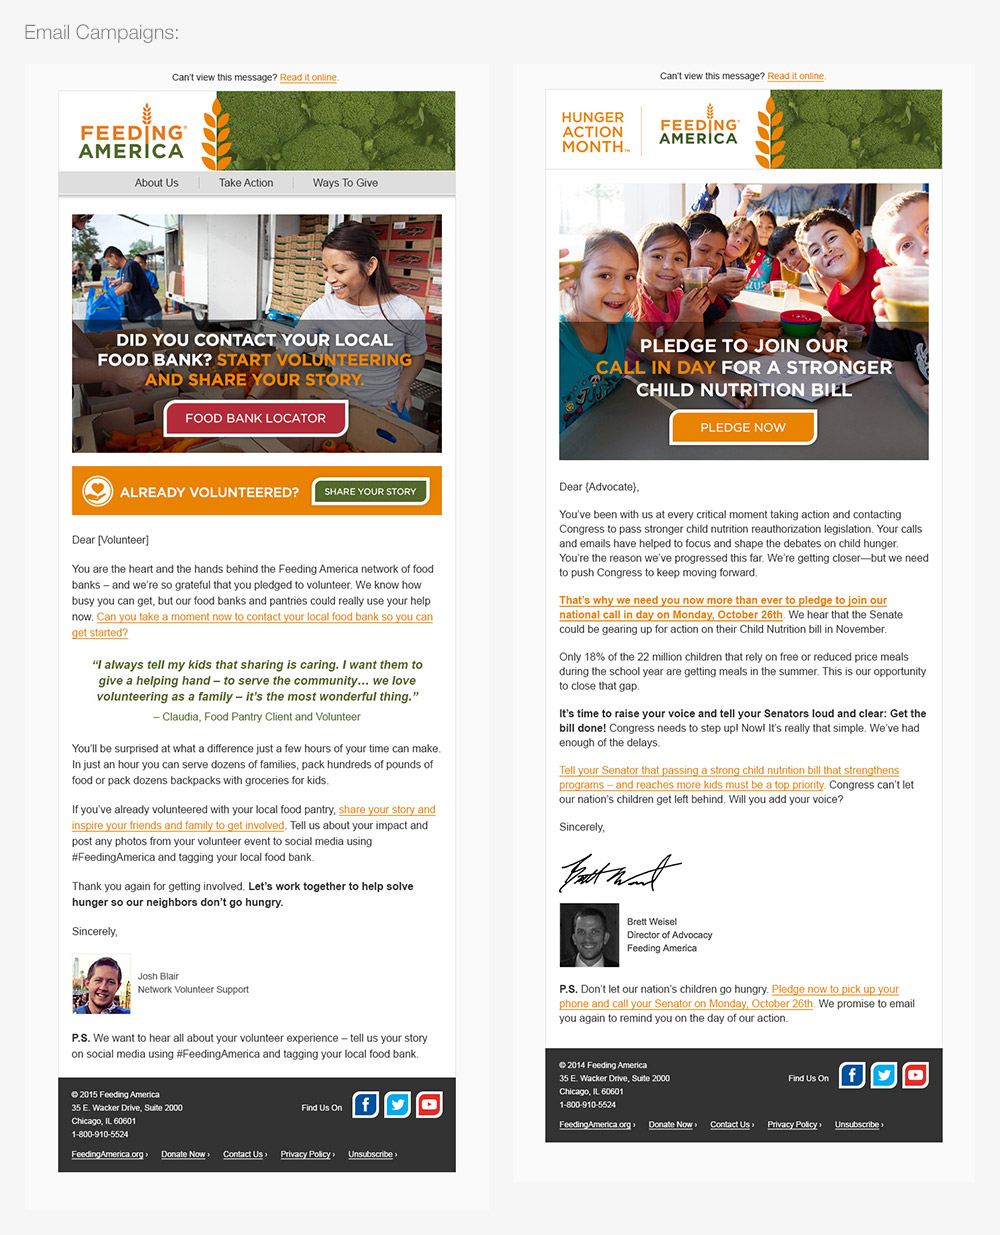 fa-emailcampaigns